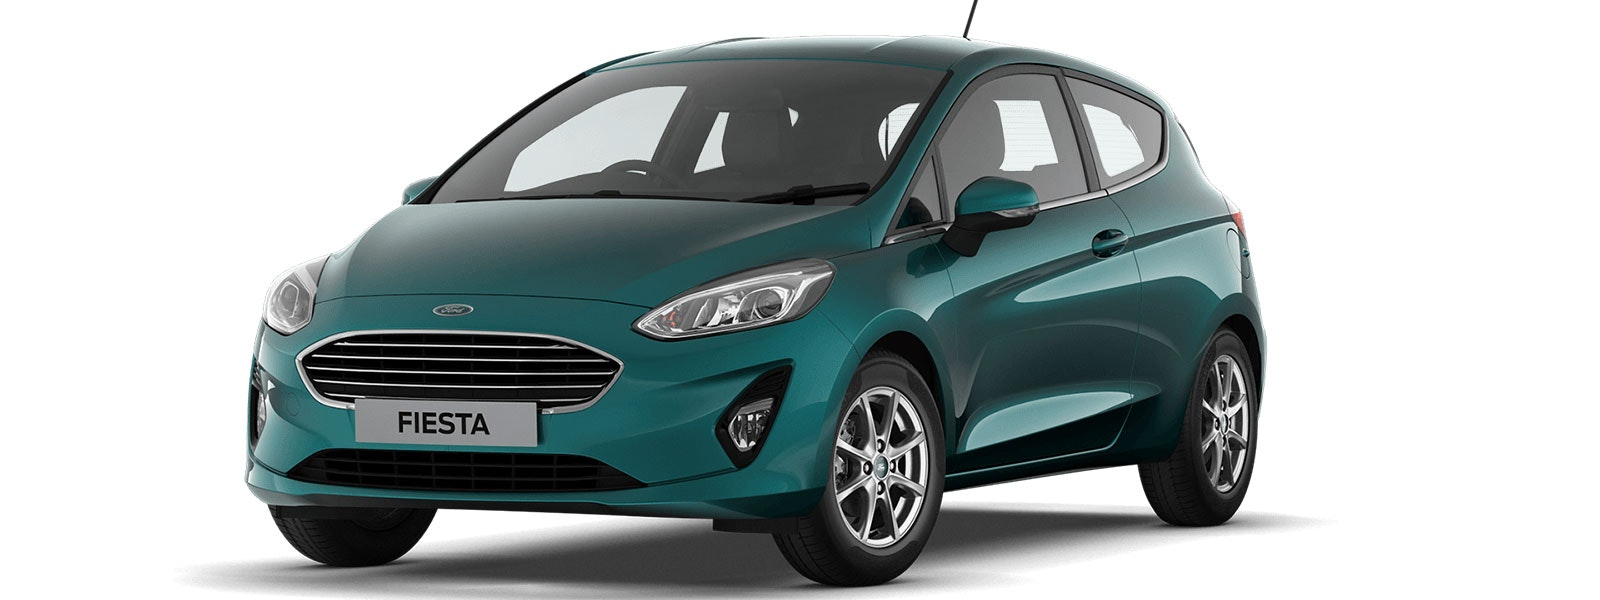 Black cars are notorious for showing dirt quickly however so budget for plenty of car washes.  sc 1 st  Carwow & 2017 Ford Fiesta colours guide and prices | carwow markmcfarlin.com